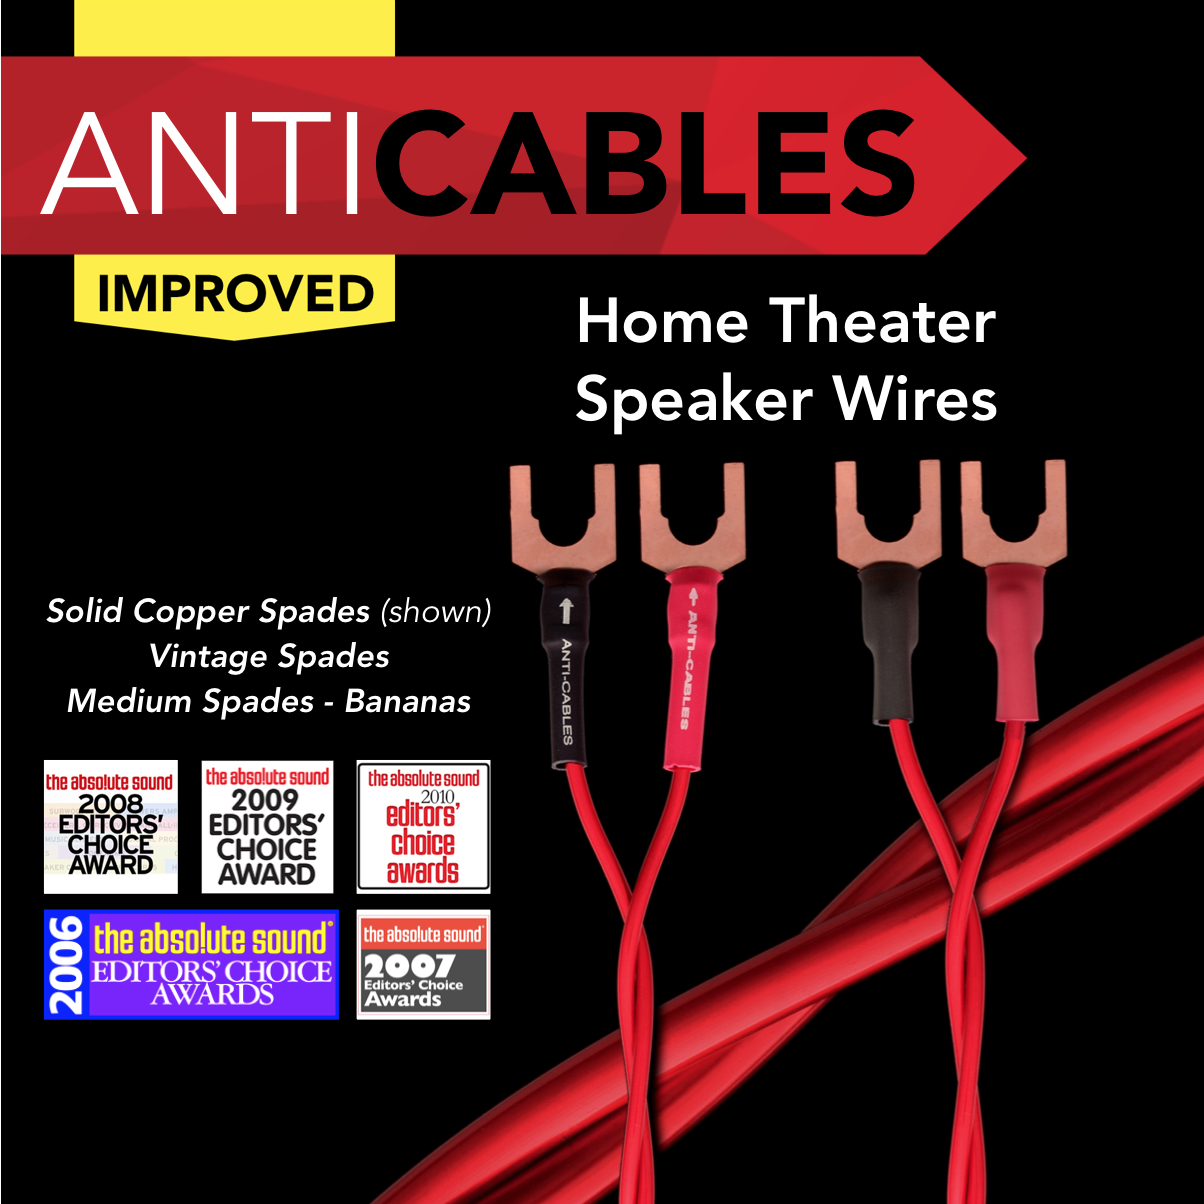 Home Theater Speaker Wires on